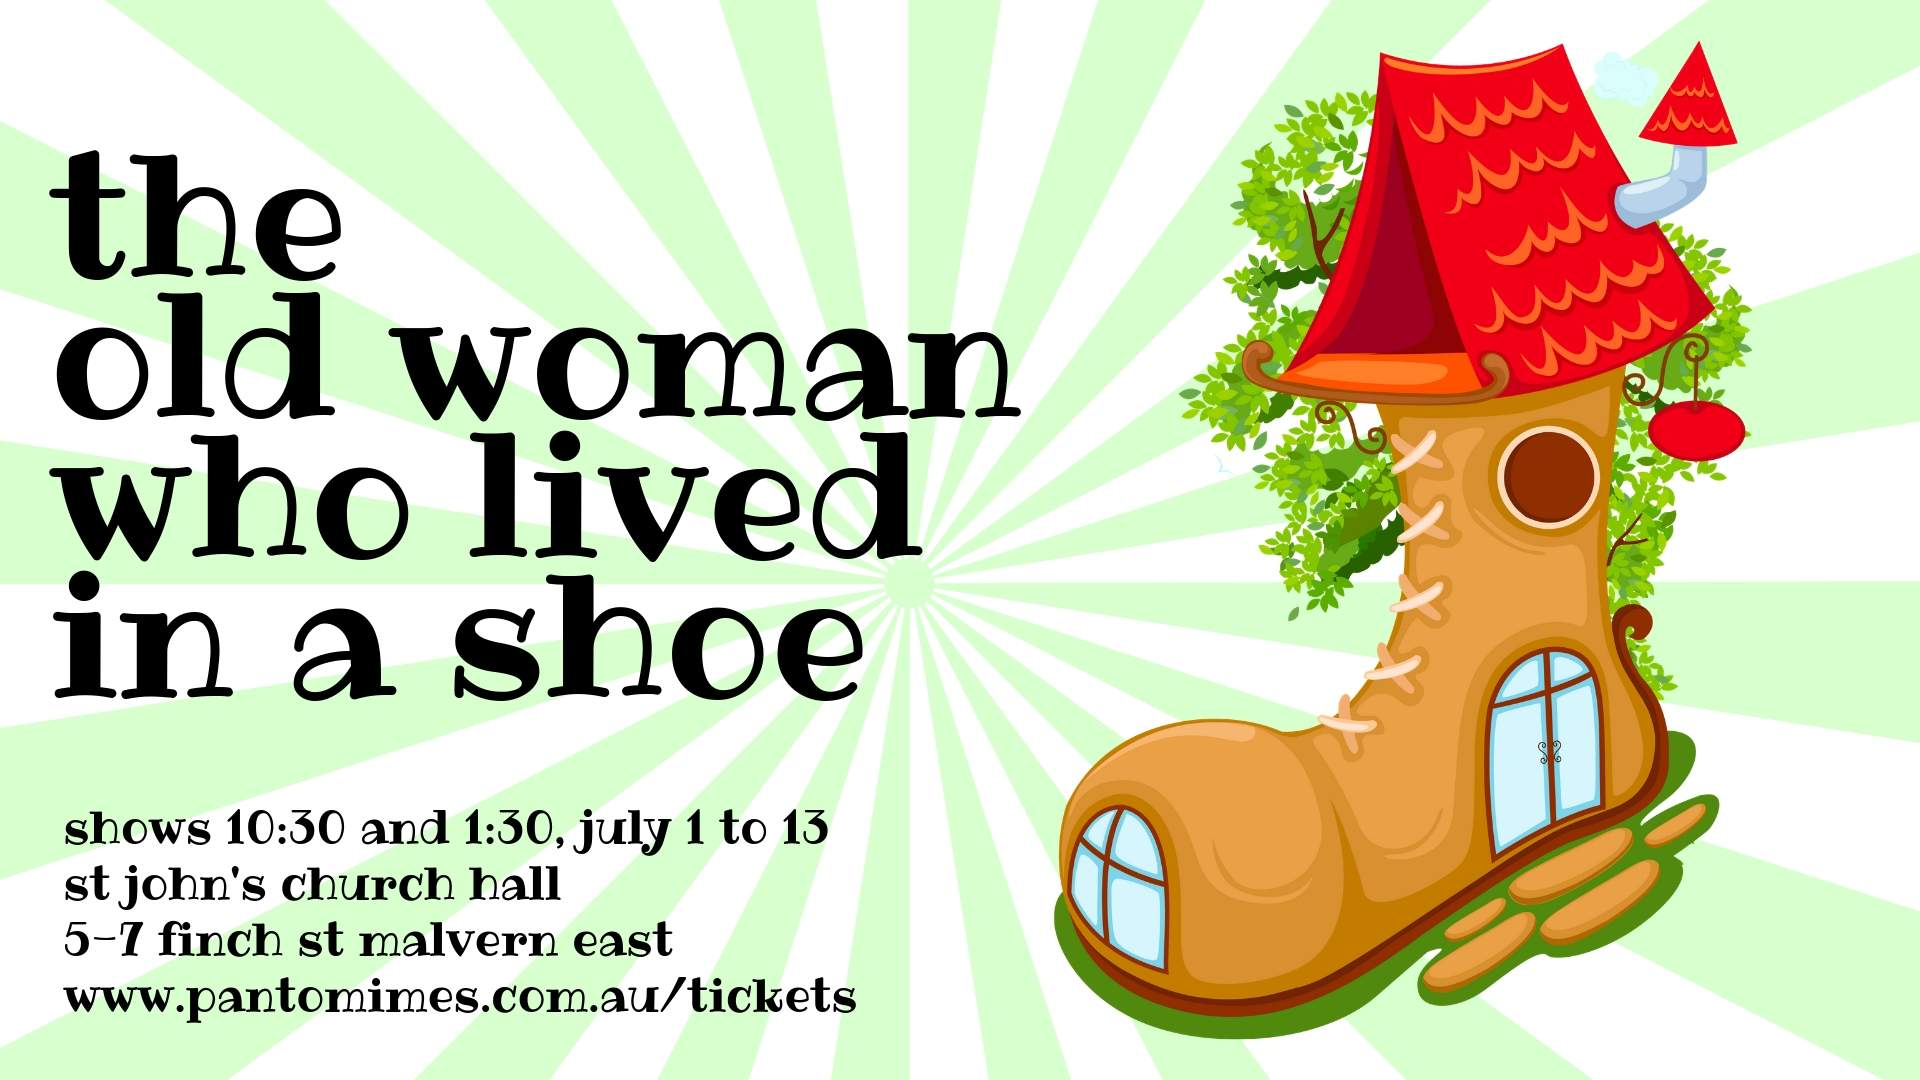 The Old Woman Who Lived in a Shoe - July 2019